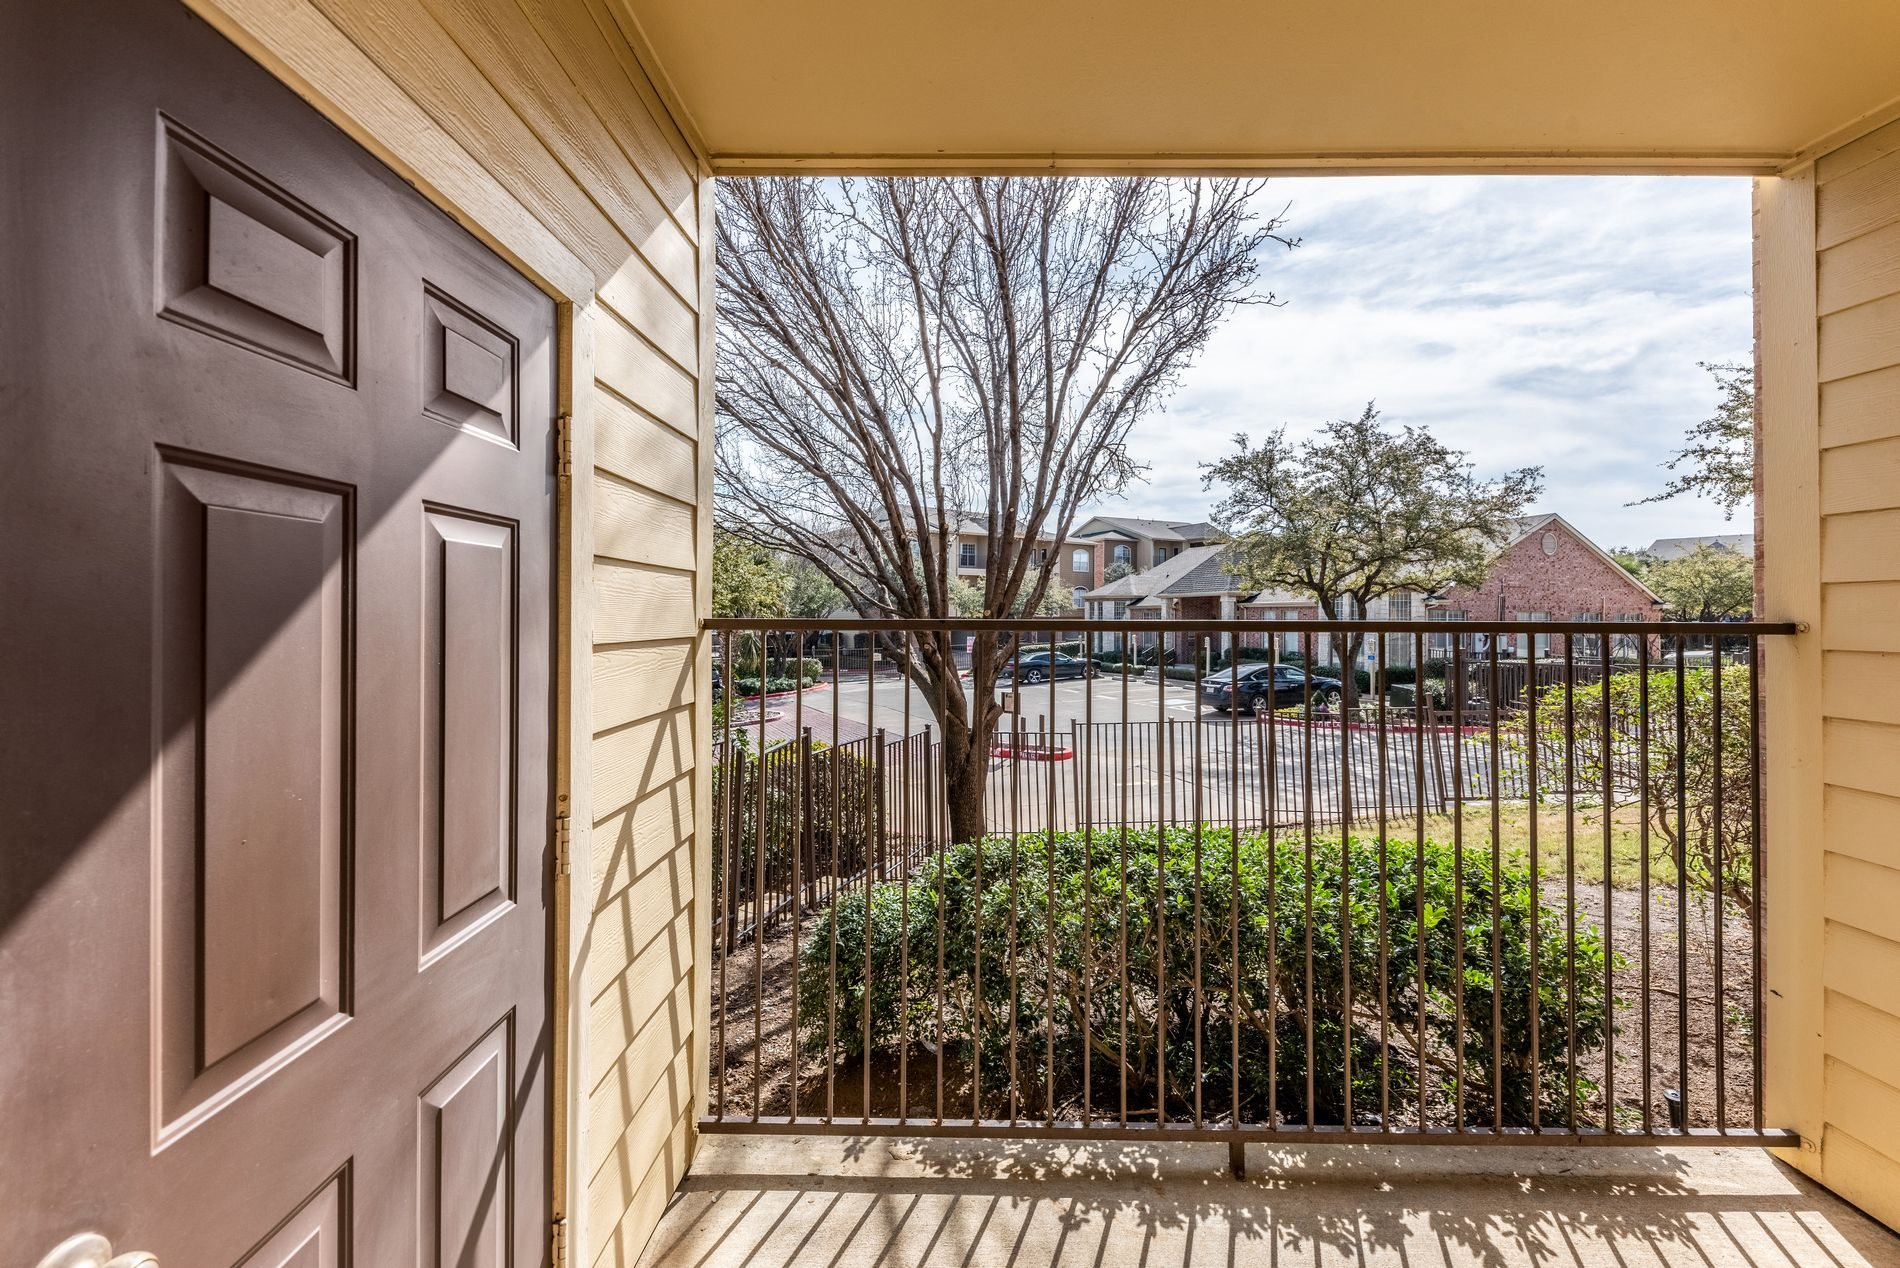 Patio or Balcony at Station 3700 Apartment Homes in Euless, Texas